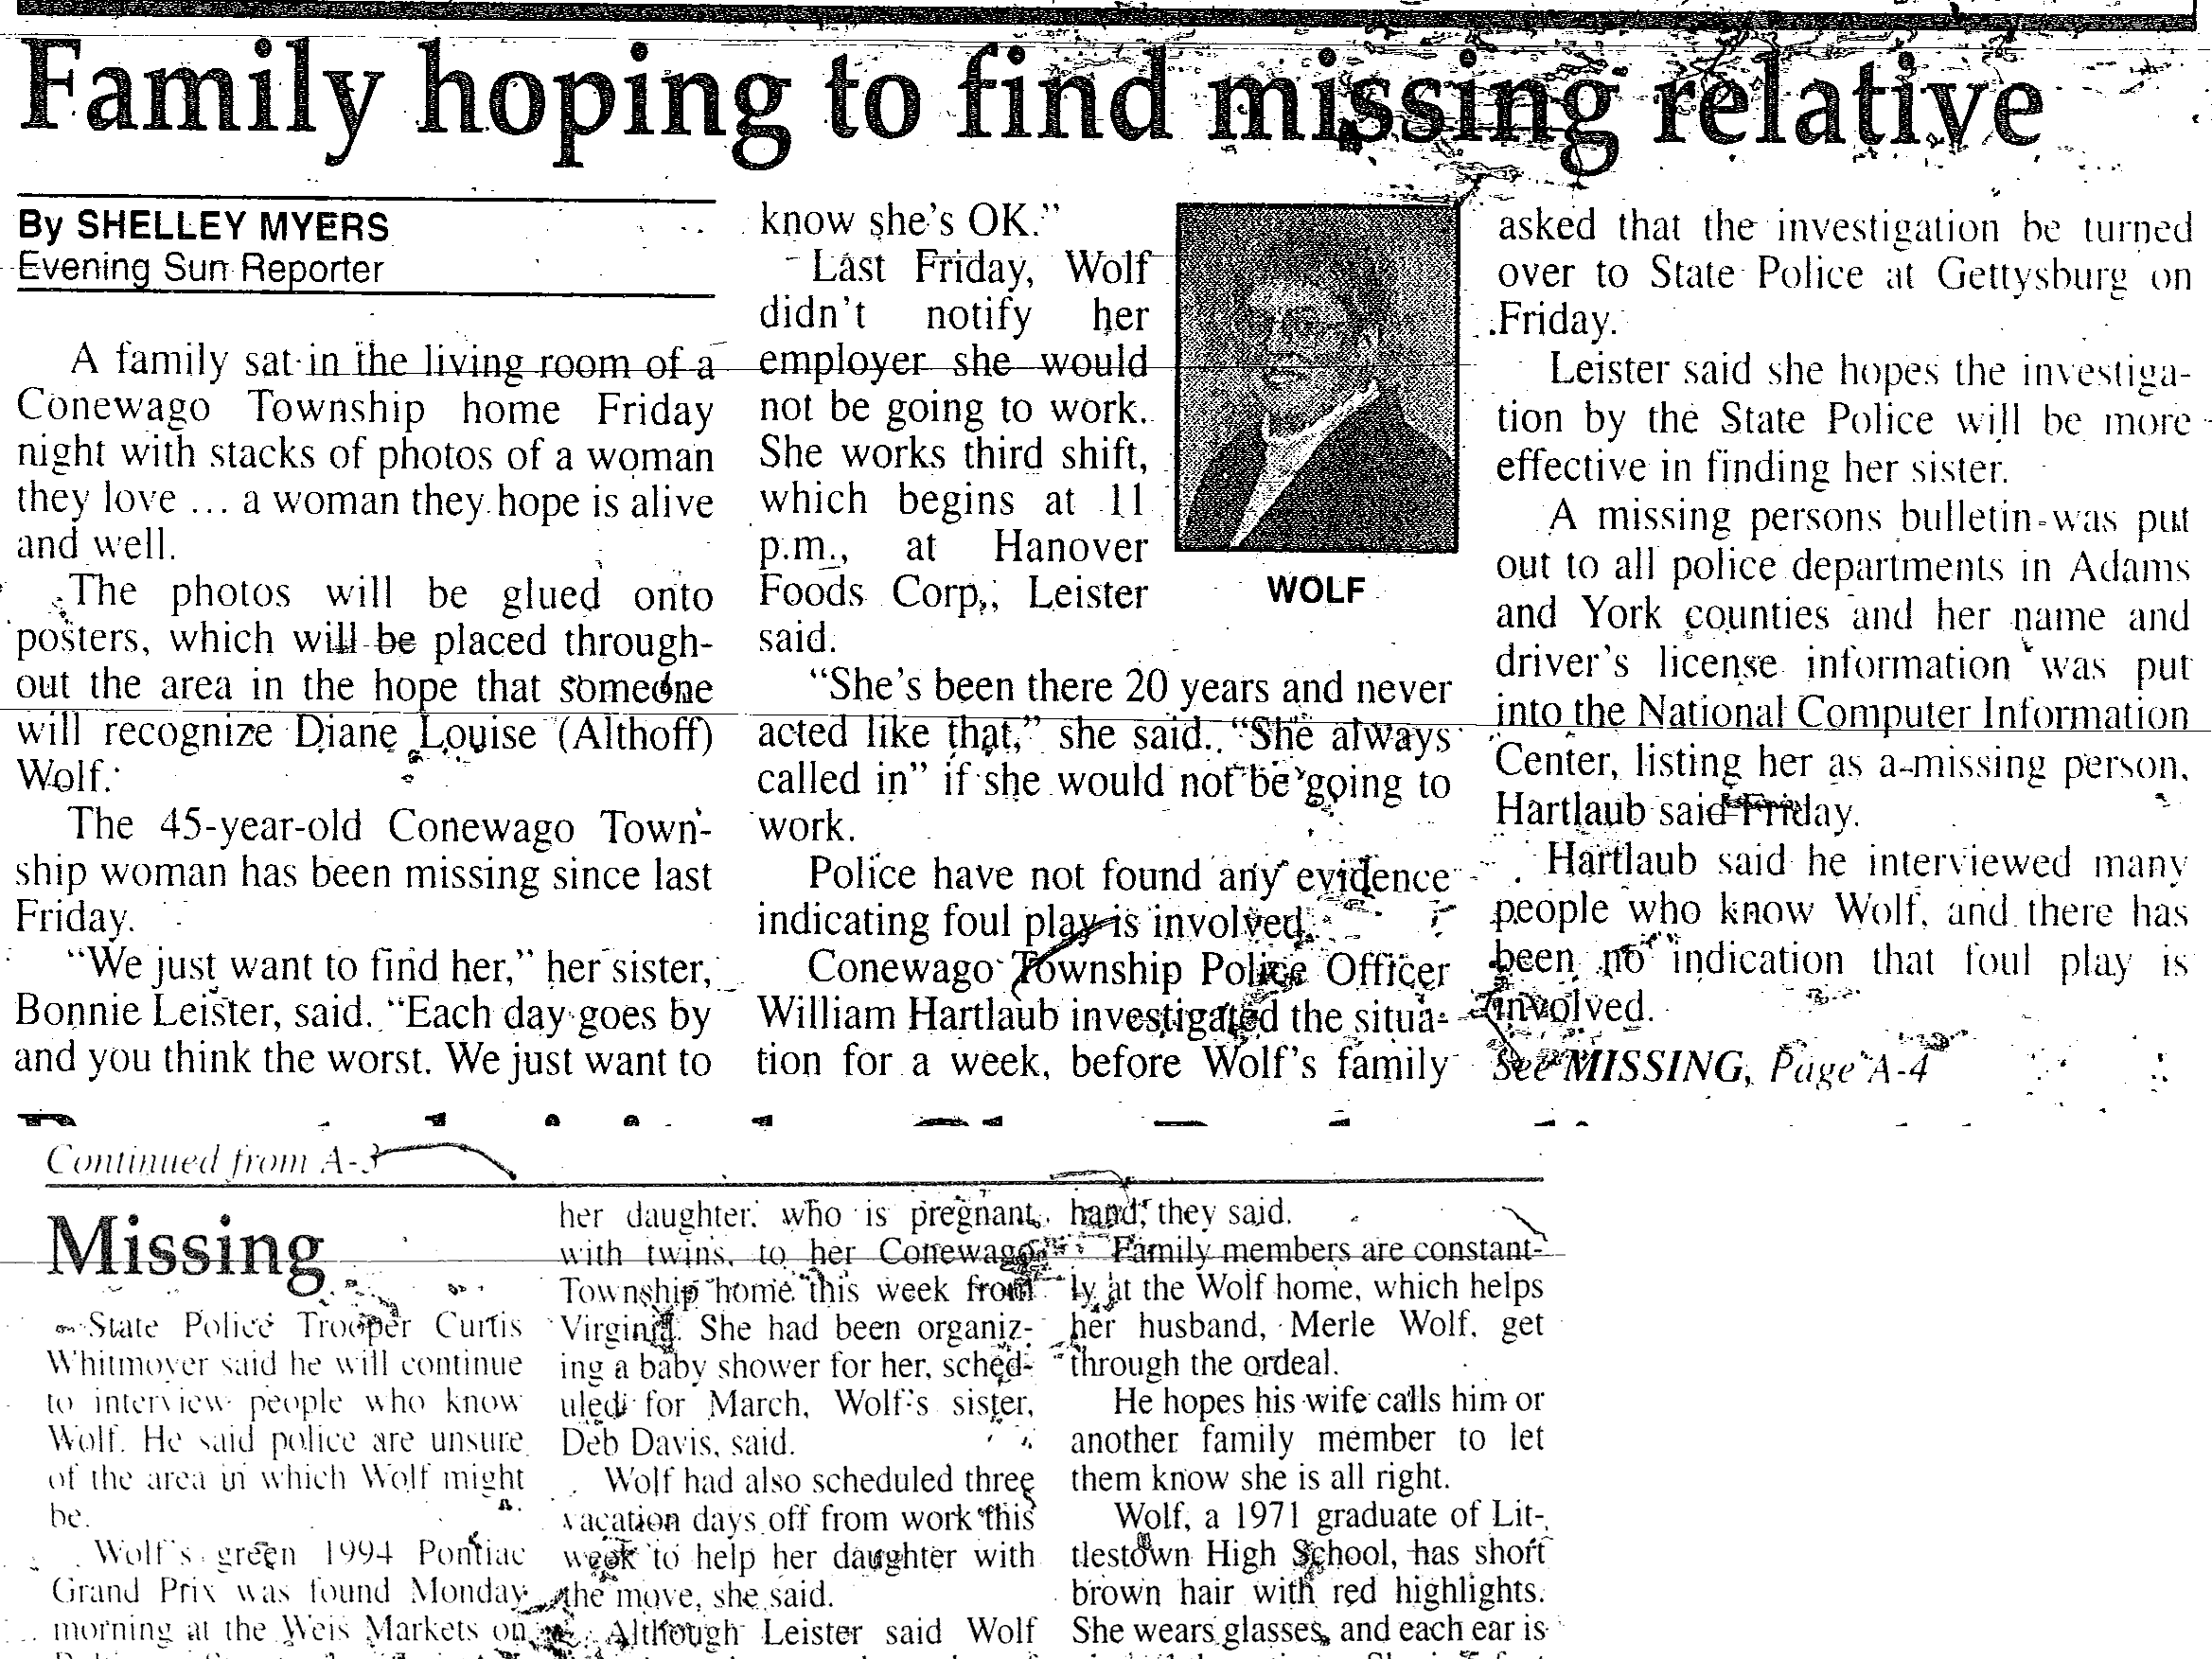 An Evening Sun newspaper clipping from February 1999 details Wolf's disappearance.